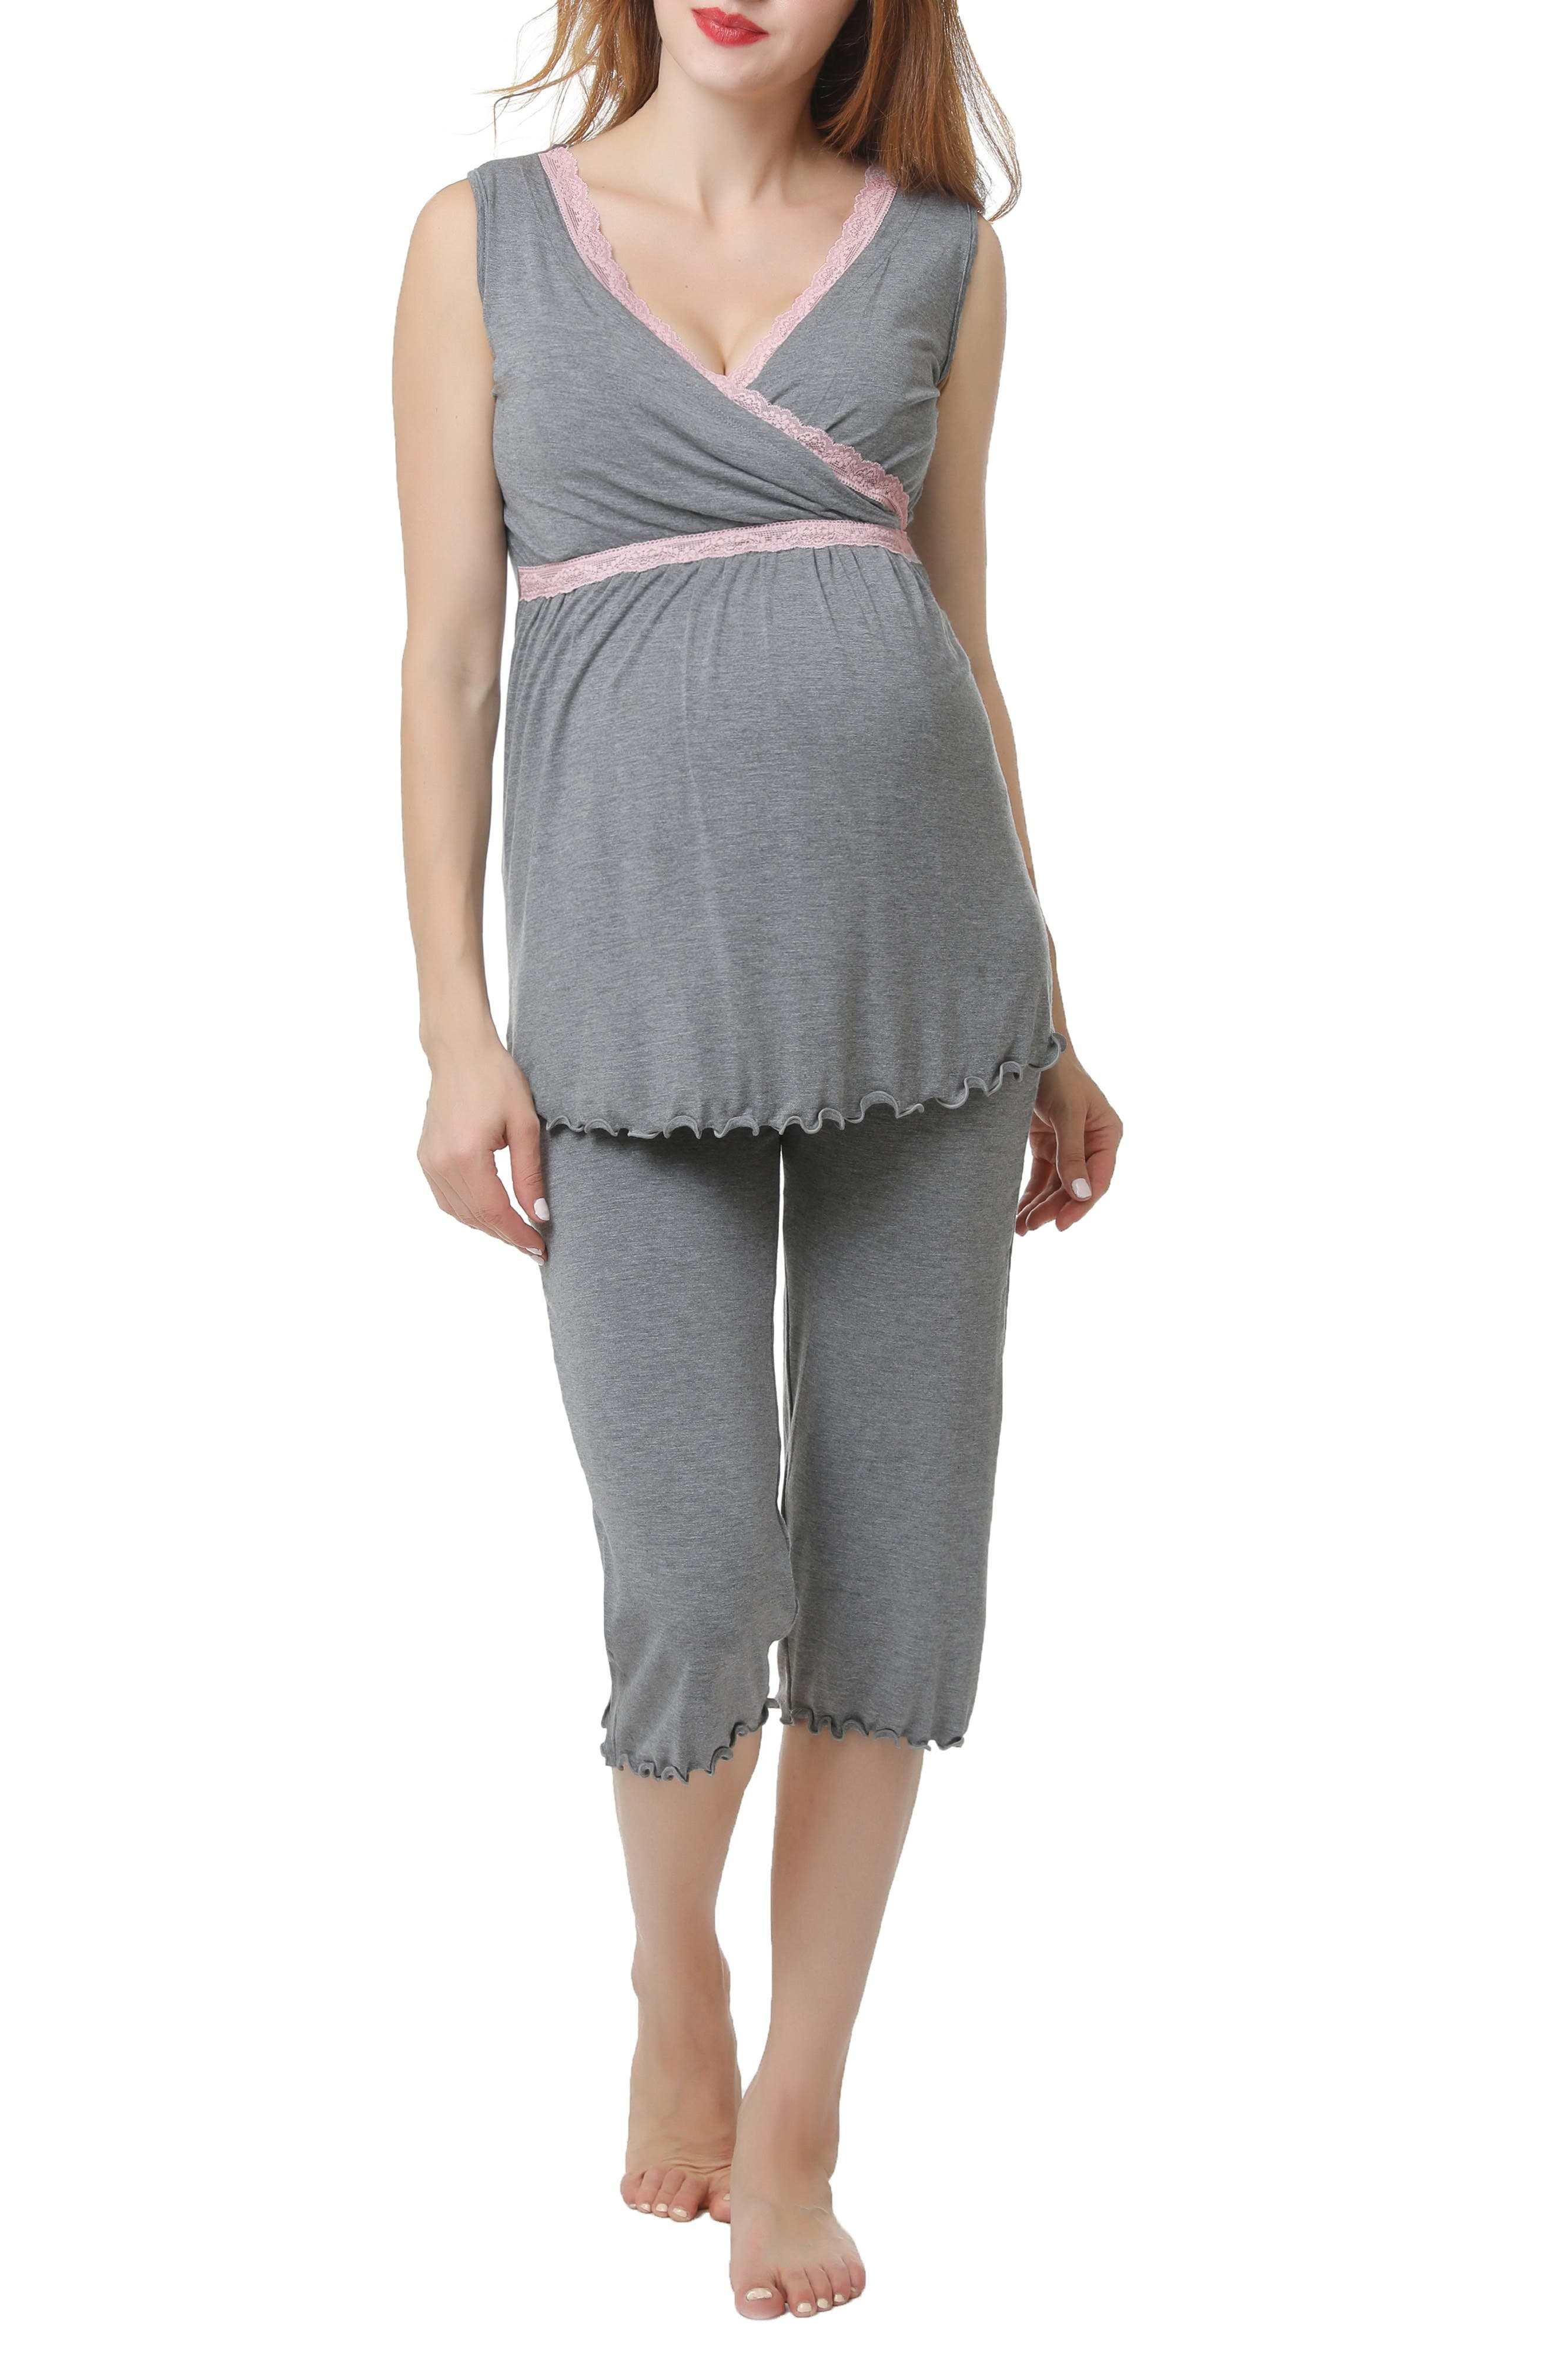 A supersoft pajama top is designed to adapt to your changing body during and after pregnancy with a flattering surplice neckline and Empire waist. A hidden layer along the neck can be pulled aside for easy and discreet nursing. Comfy capri-length pants complete the set. Style Name: Kimi And Kai Penny Nursing/maternity Pajamas. Style Number: 5719639. Available in stores.